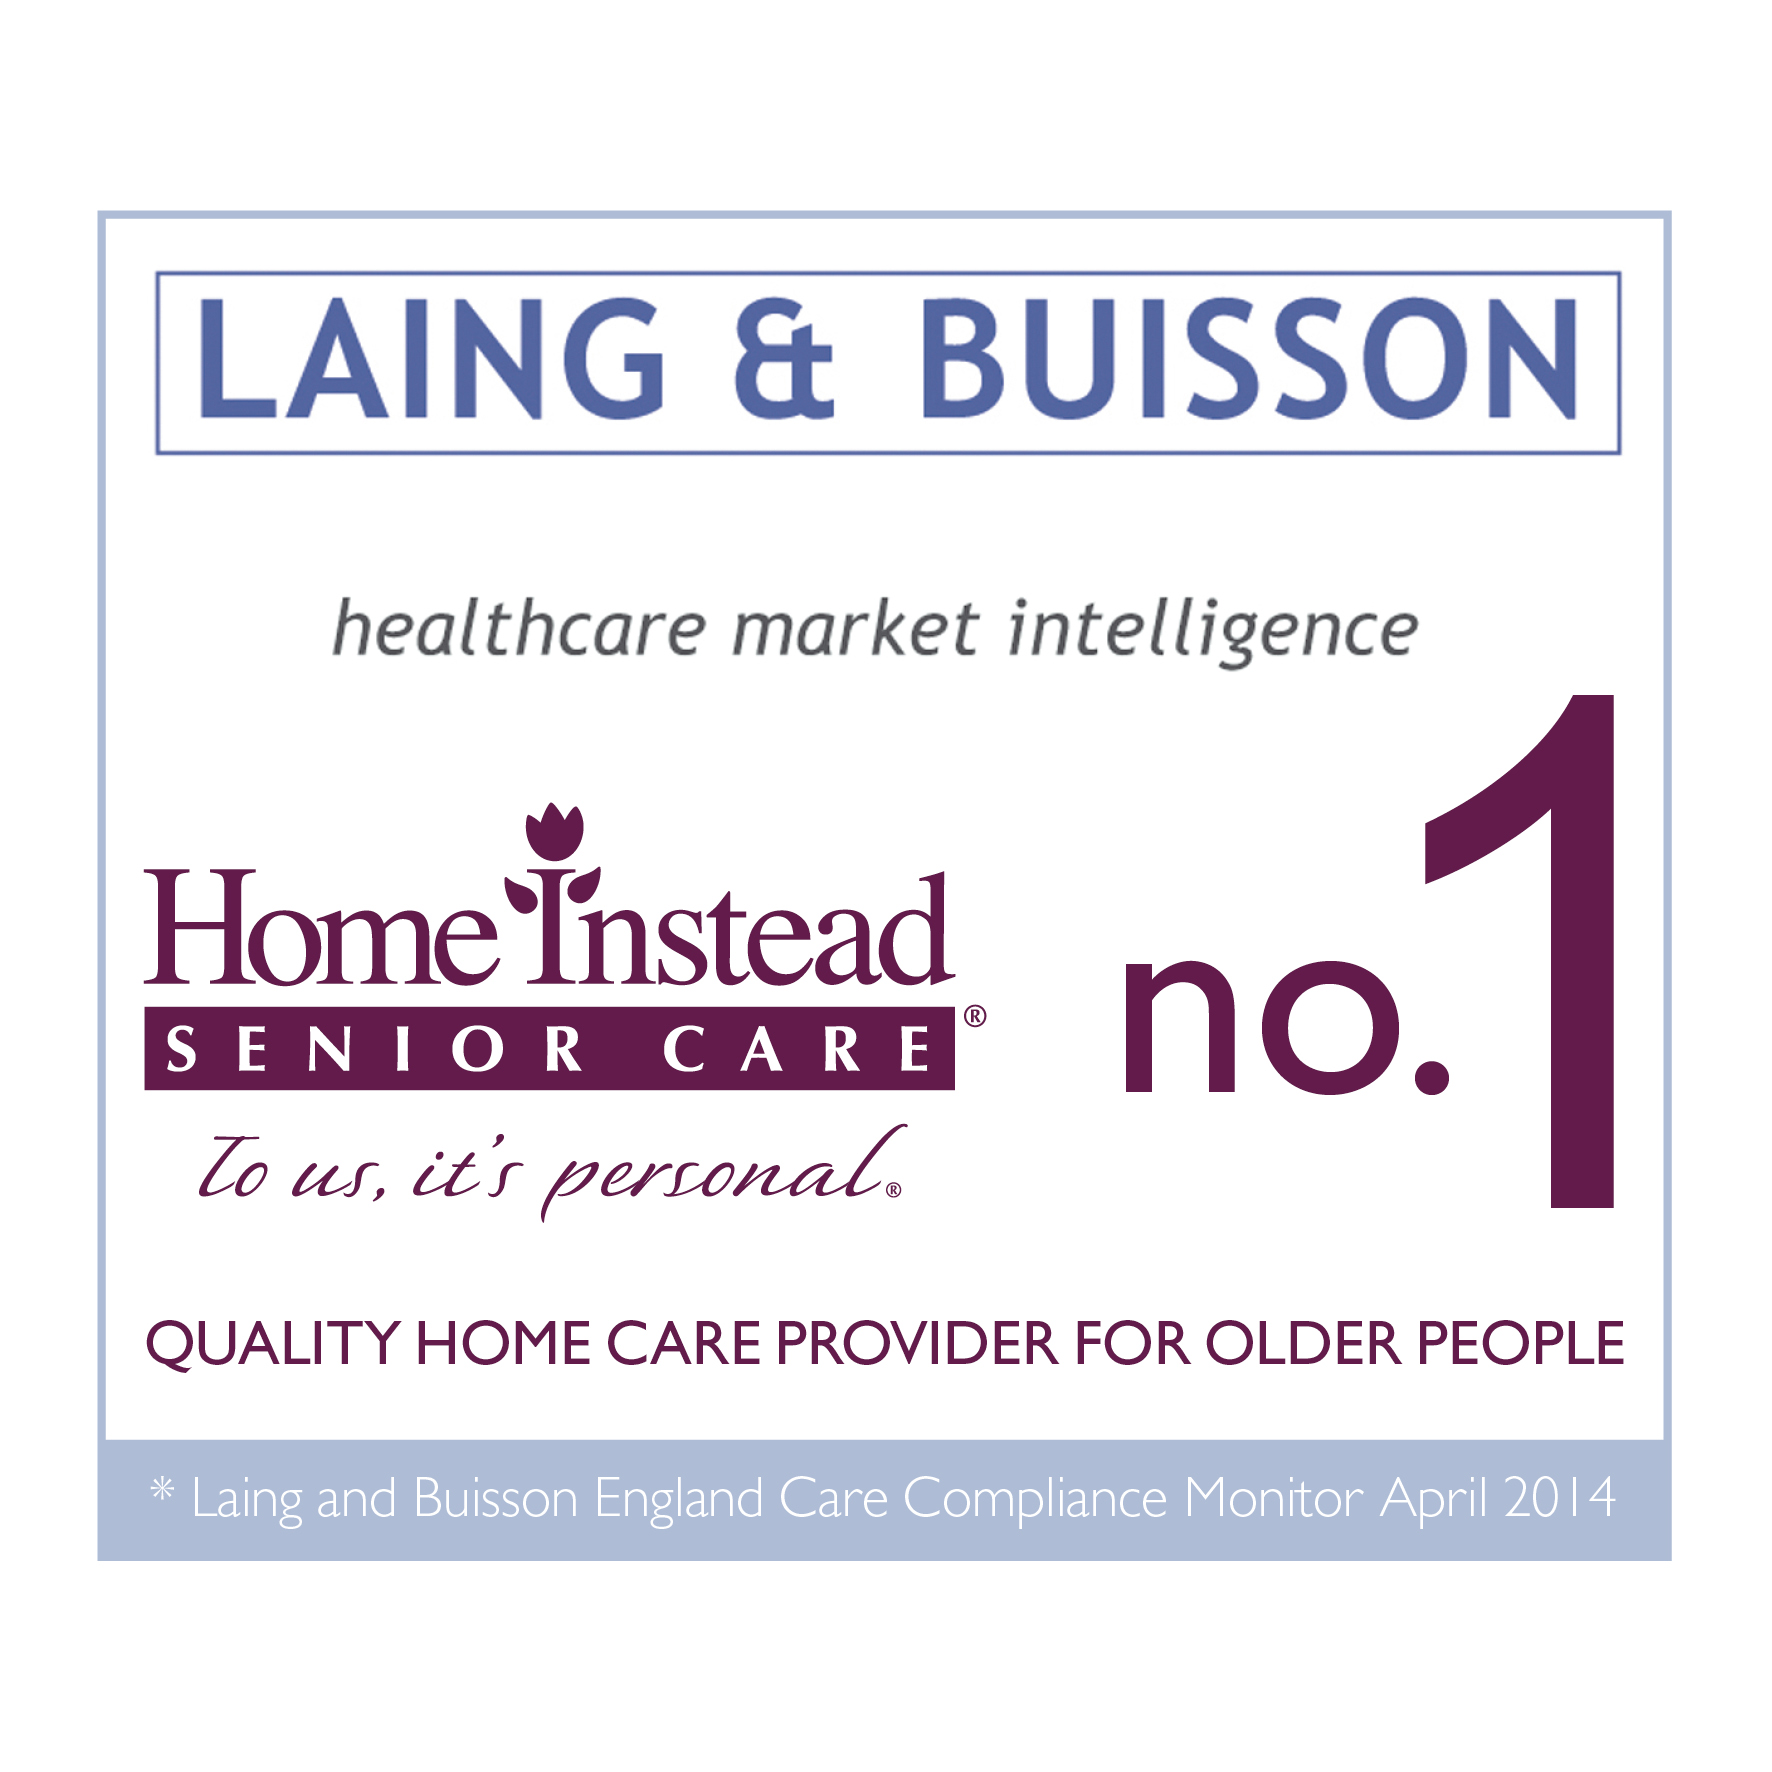 Laing & Buisson no.1 Quality Home Care Provider for Older People logo